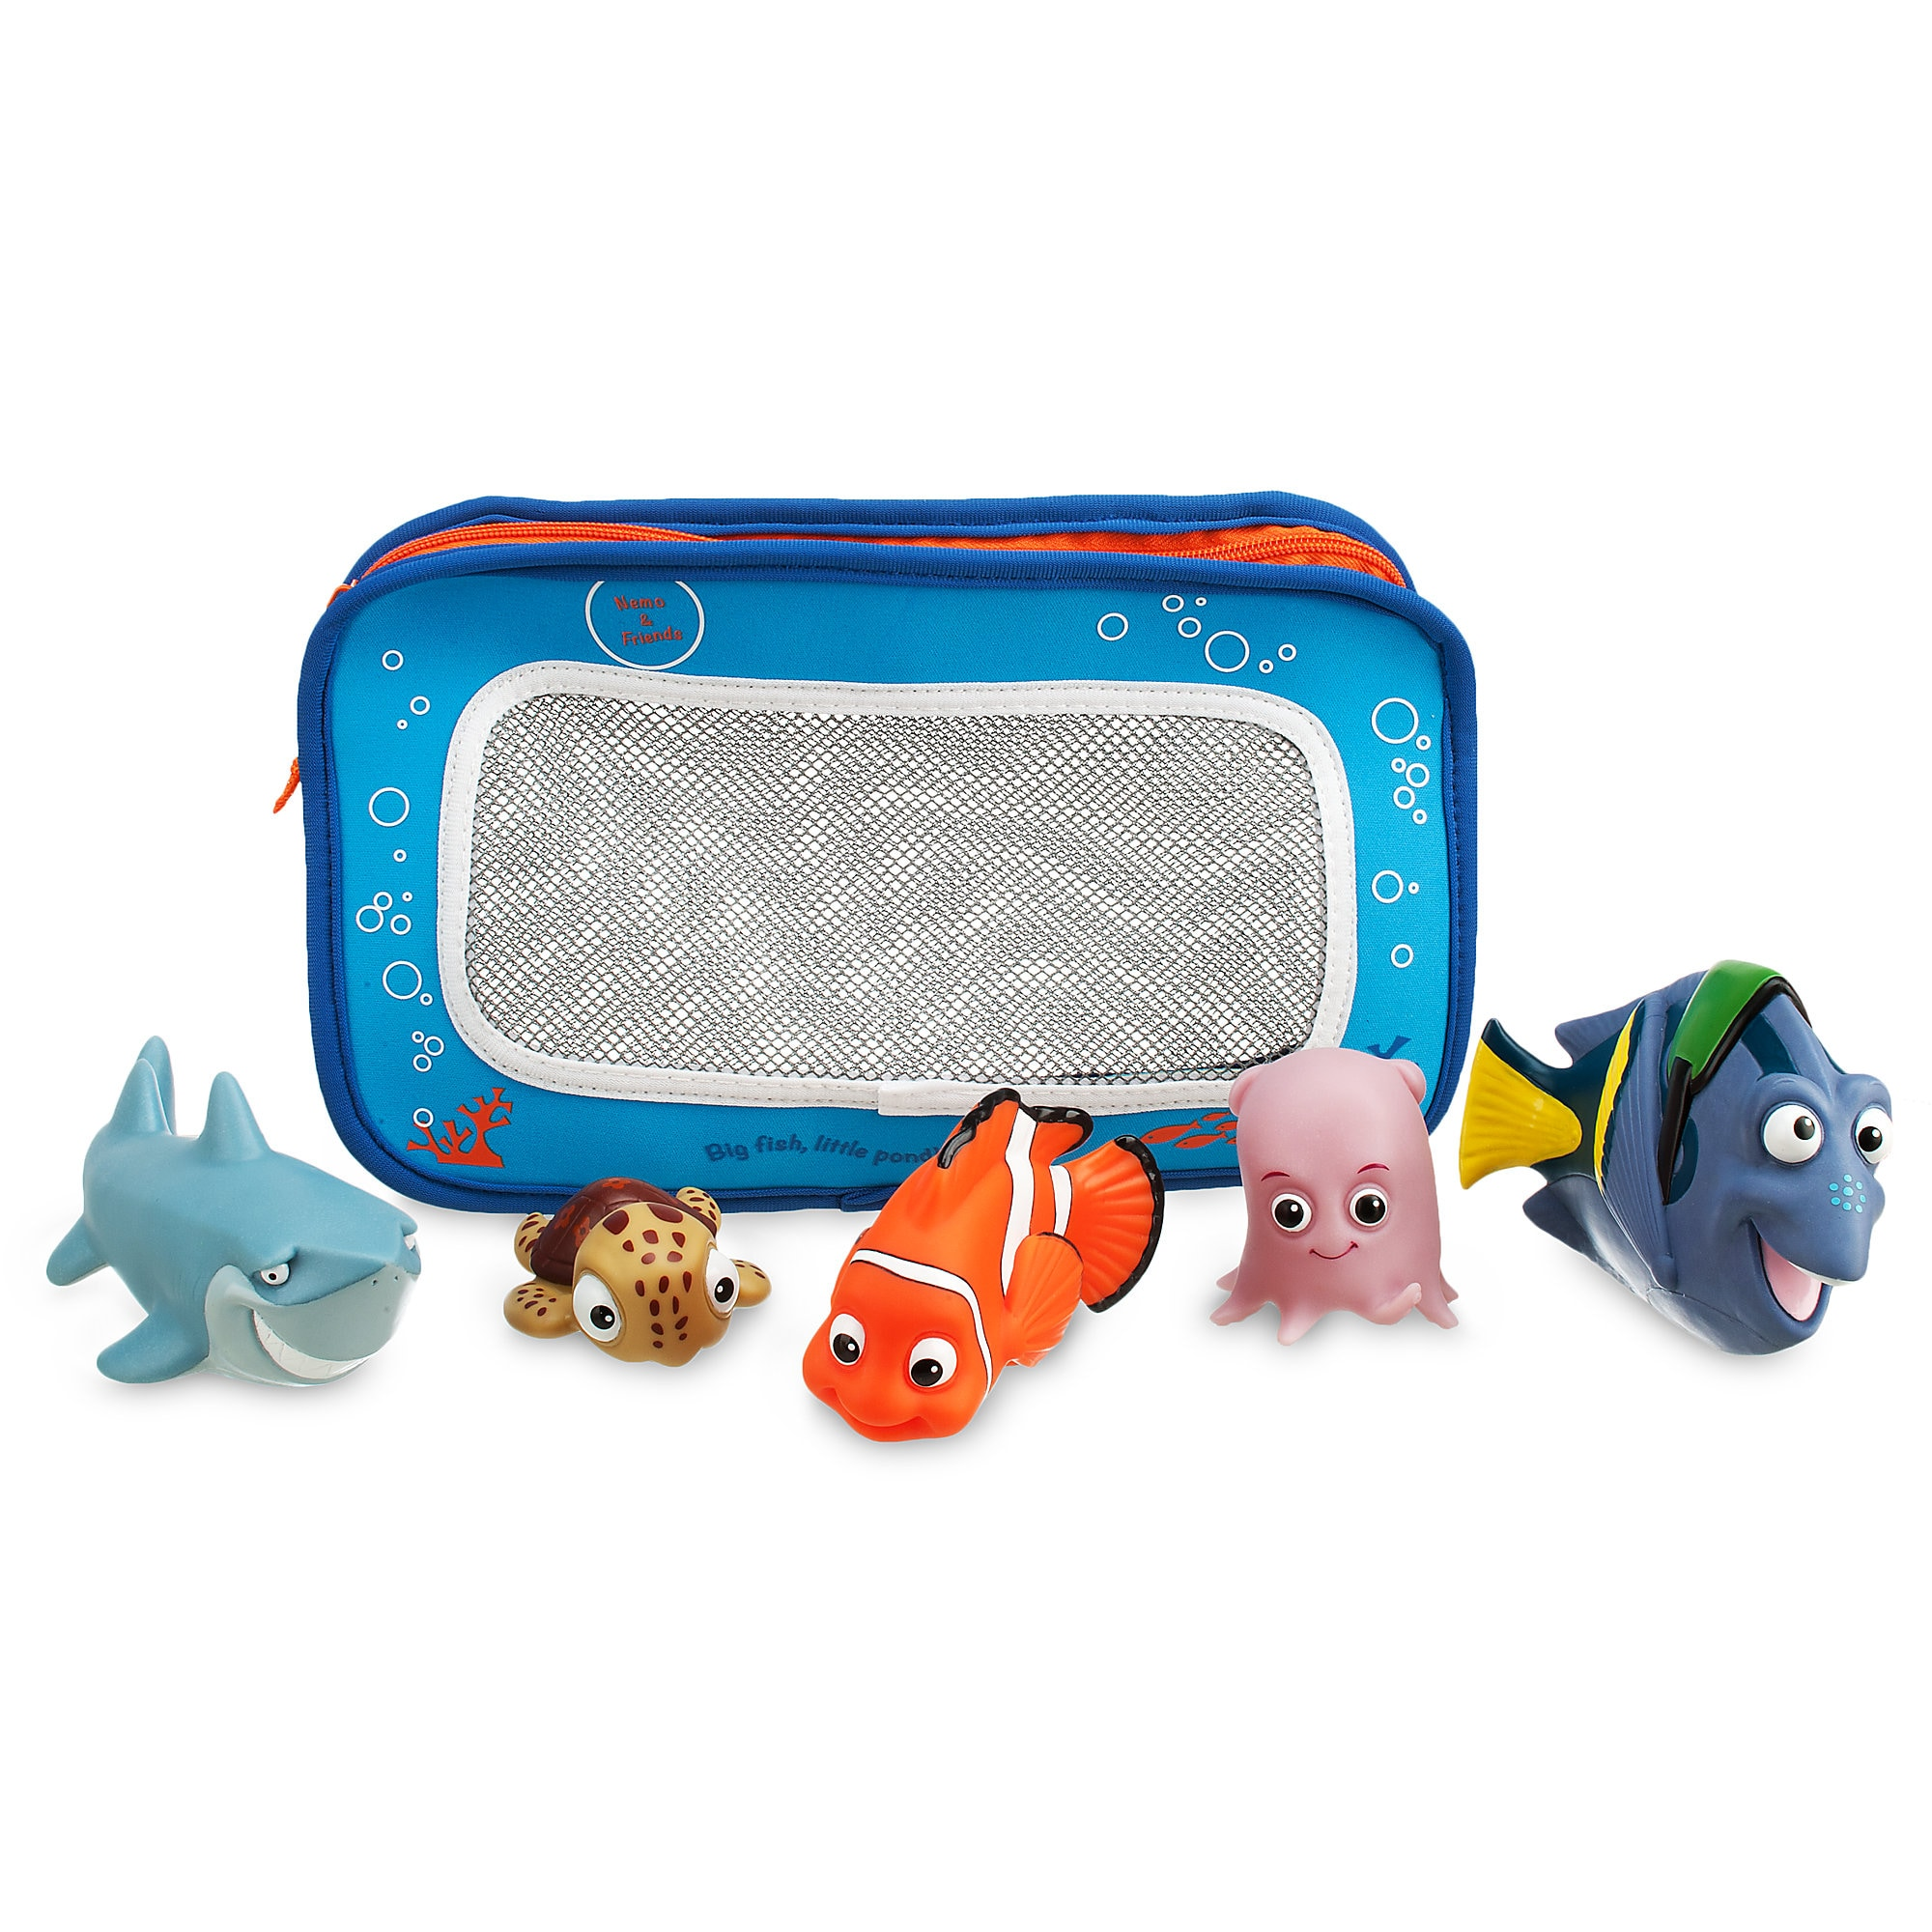 Nemo Bathroom Set Finding Nemo Bath Toys For Baby